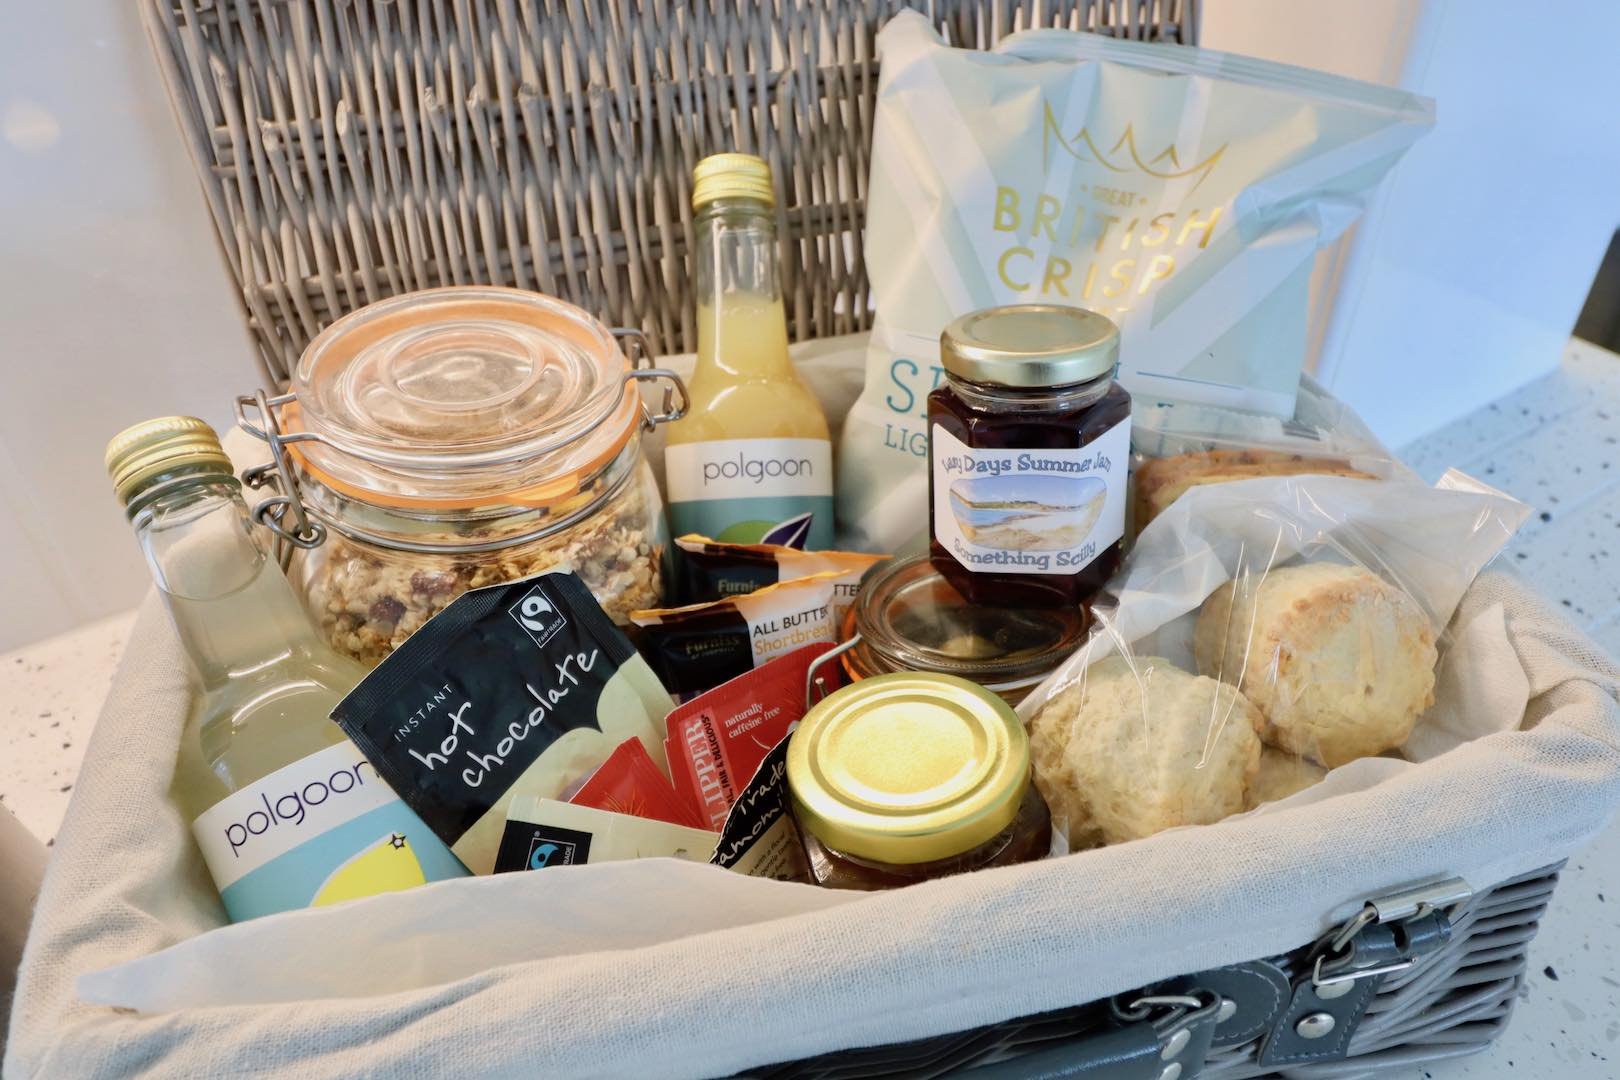 Penhallow Self Catering Welcome Hamper